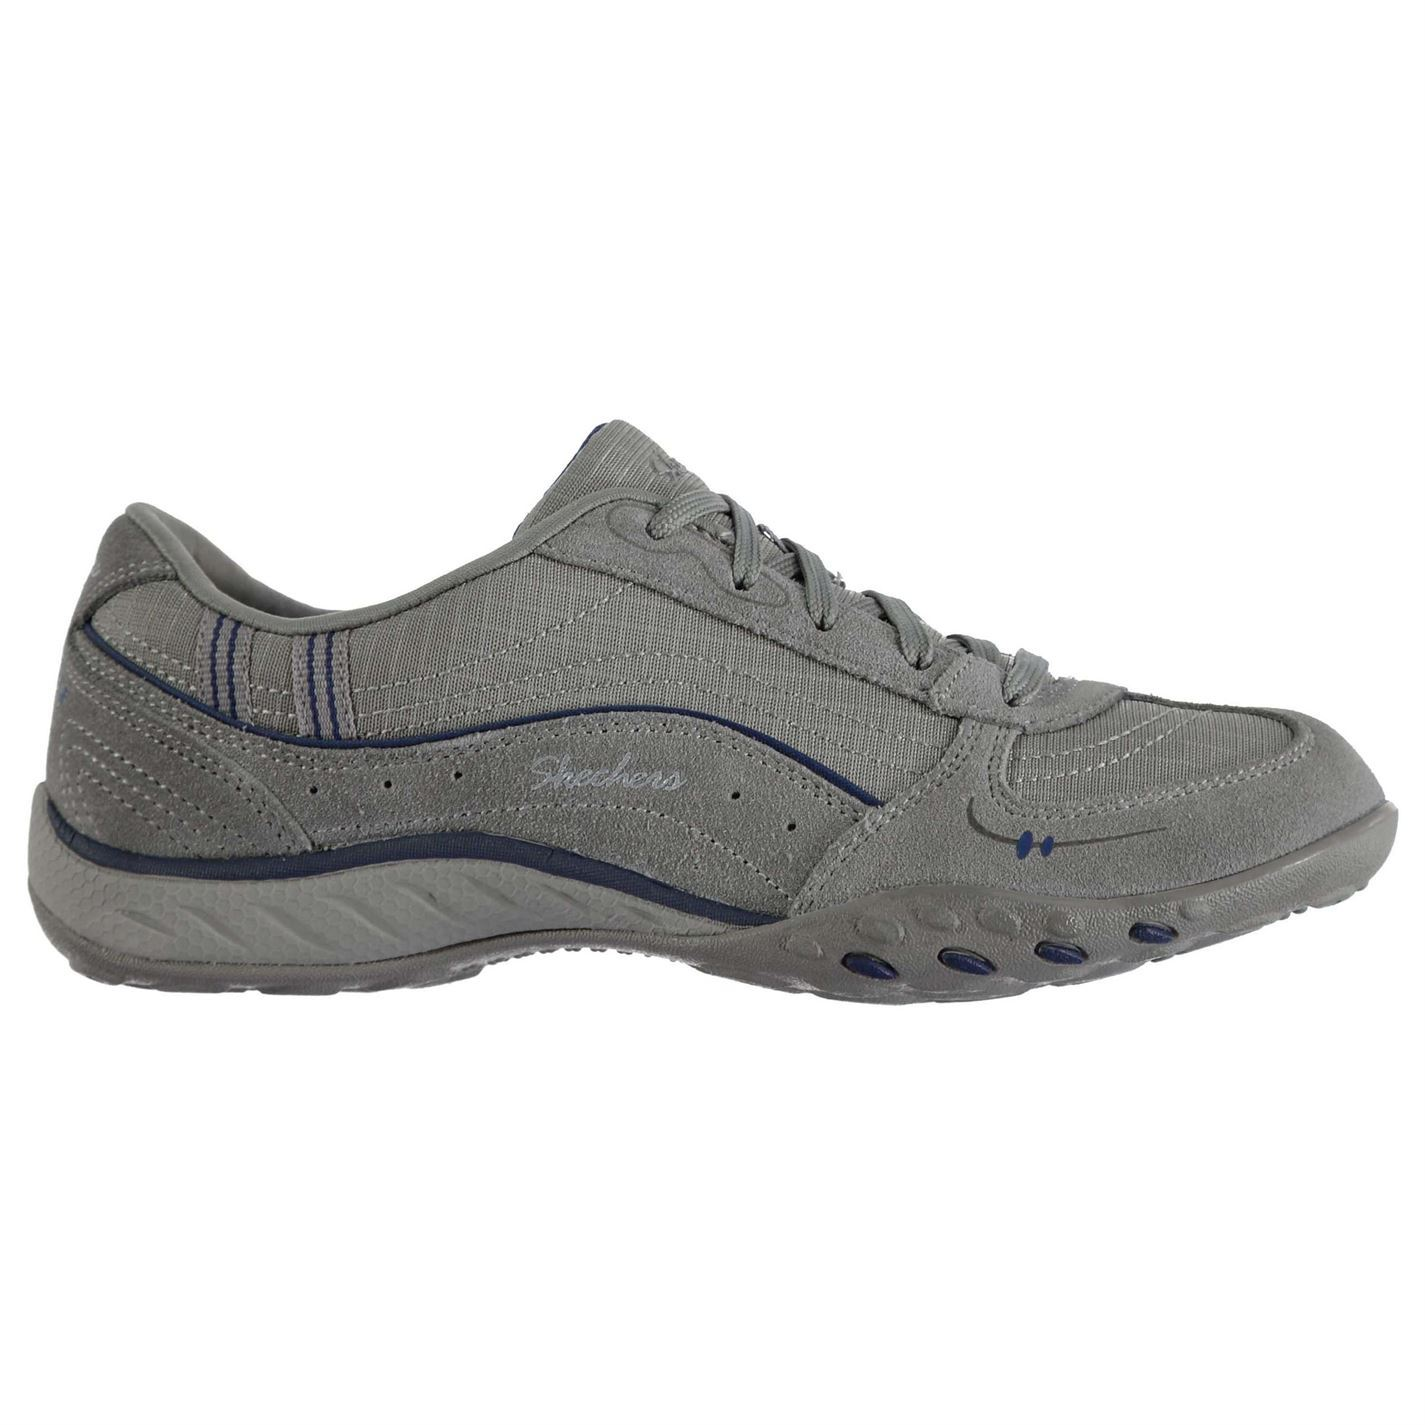 Skechers Act Overlay Just Relax Damenschuhe Schuhes Overlay Act Laces Fastened Footwear 1835bd